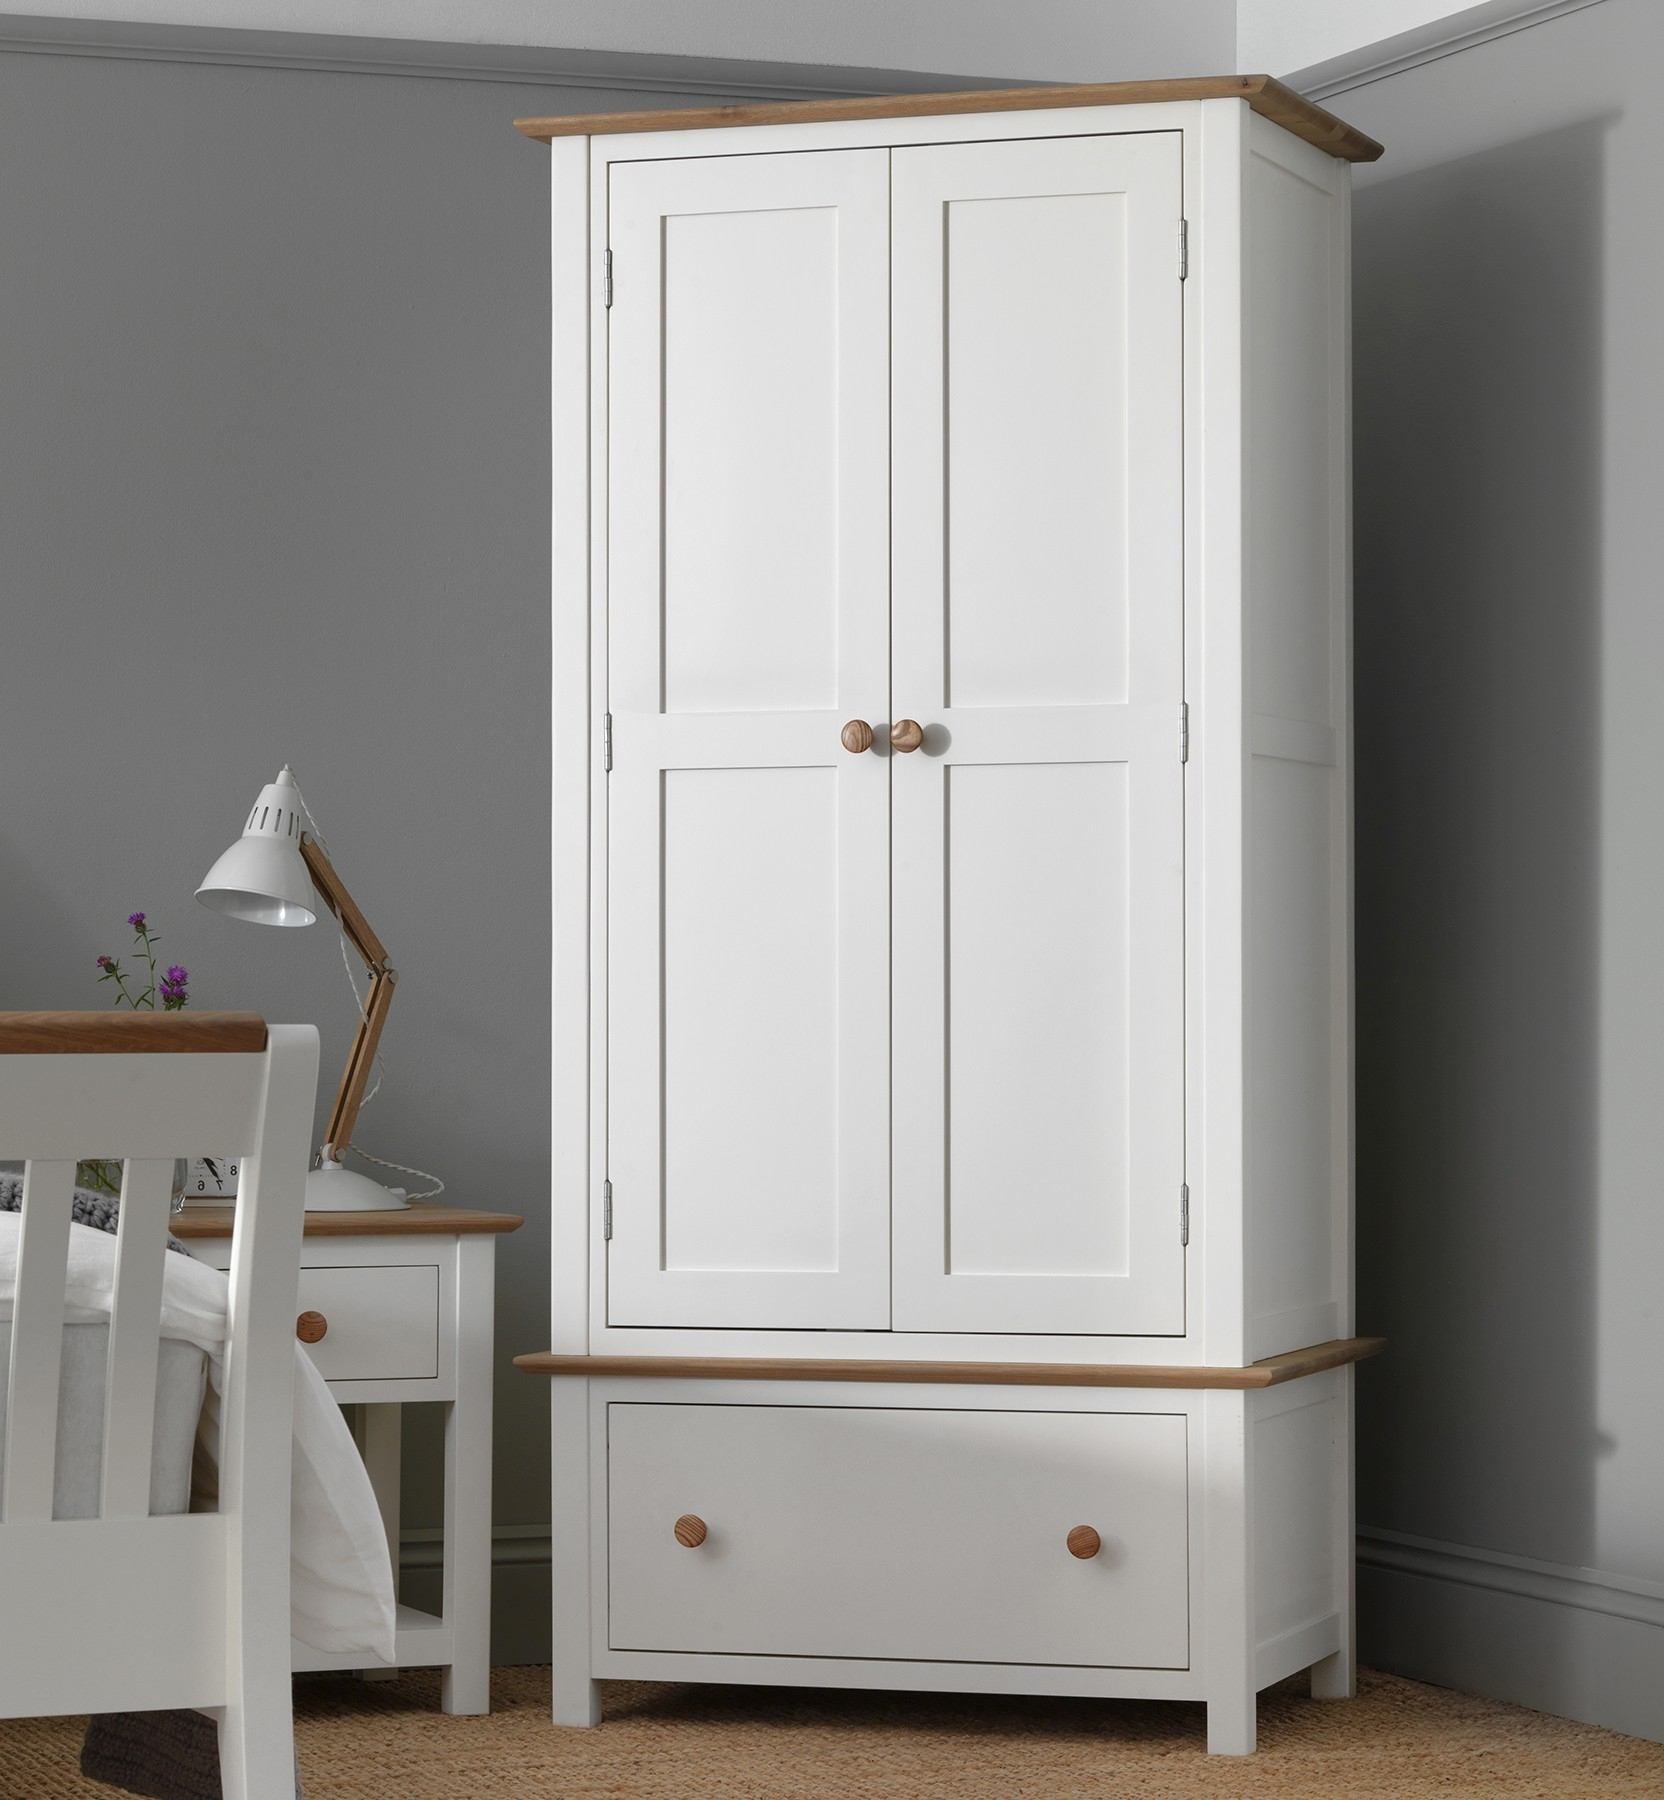 Remarkable Design White Wardrobe With Drawers And Shelves Pertaining To Most Current Wardrobe With Drawers And Shelves (View 10 of 15)